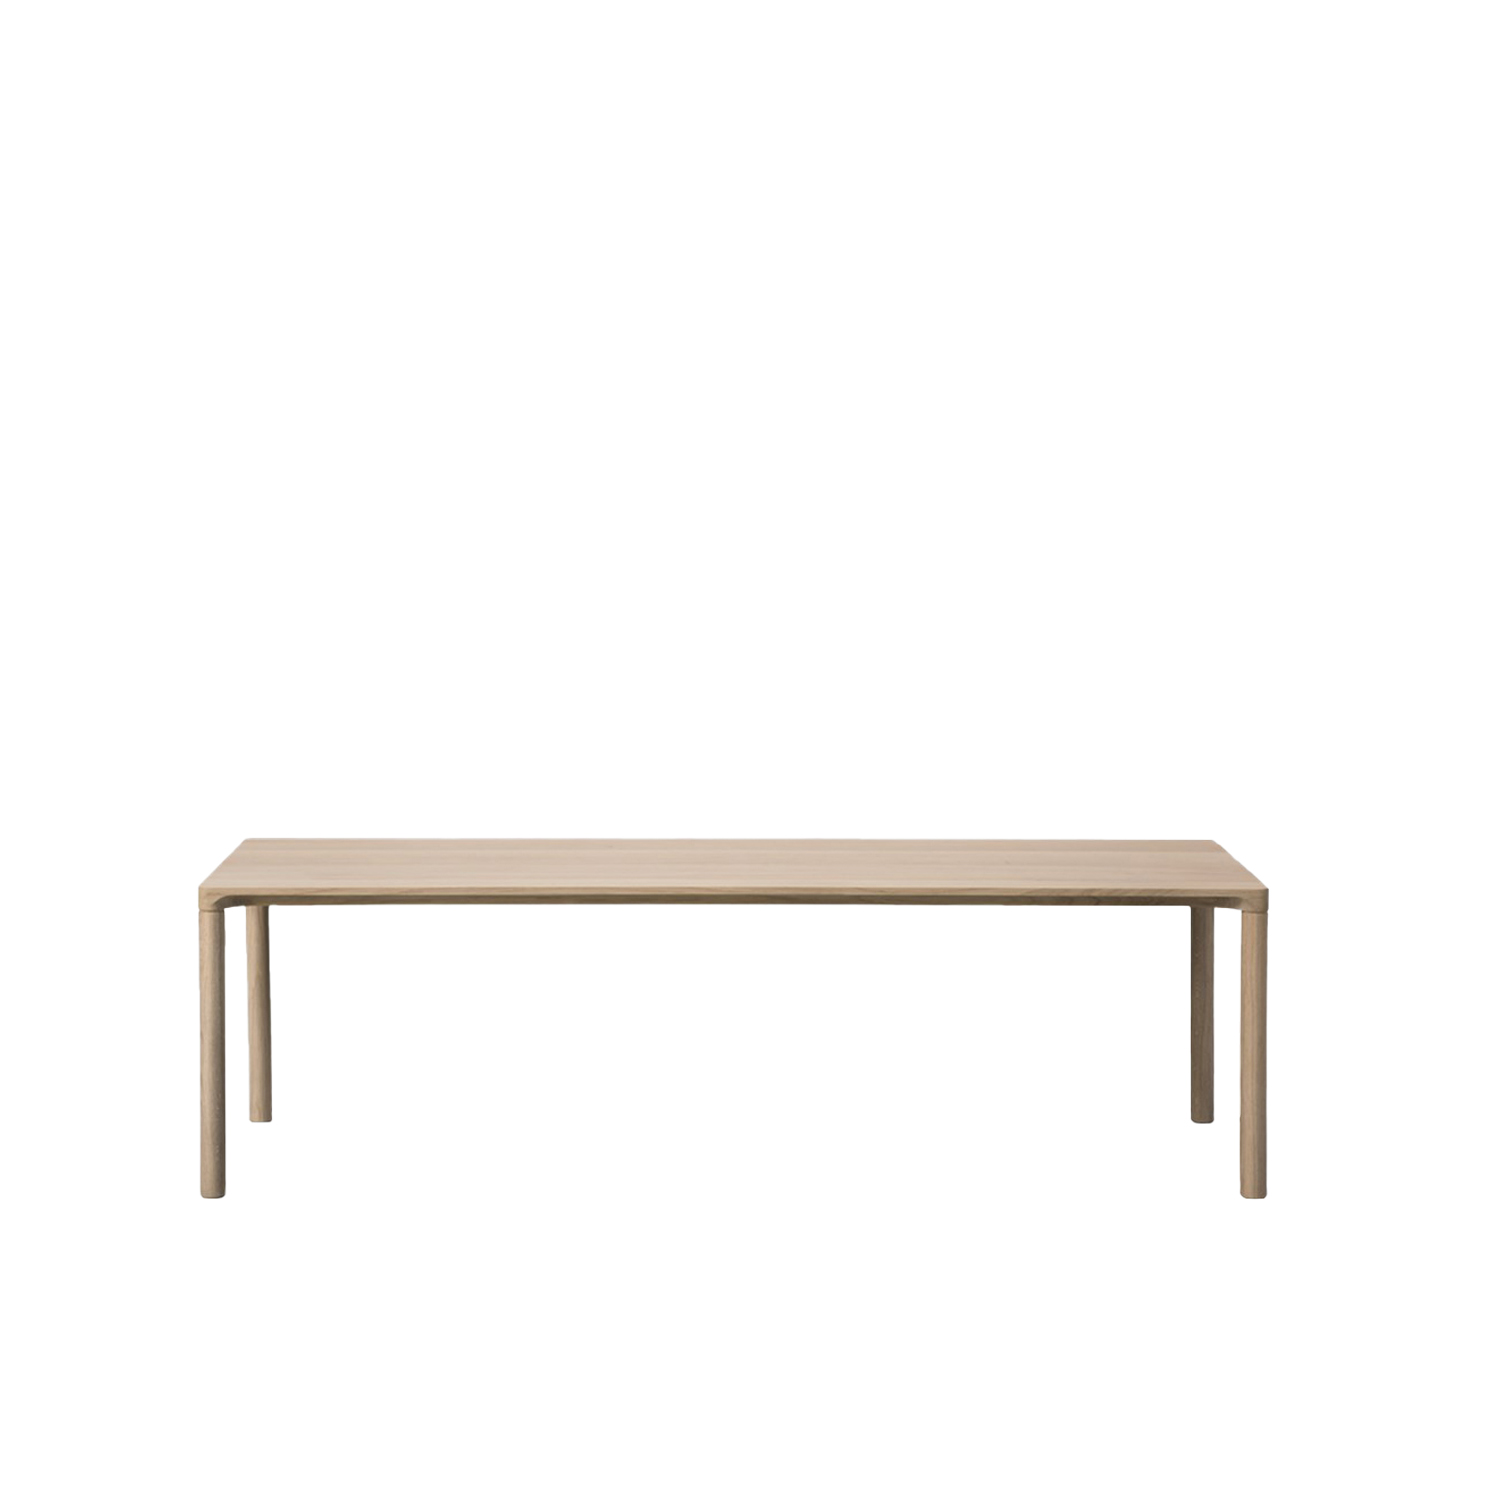 Piloti 6715 Side Table - Piloti is a series of solid oak side tables. The subtle detailing of the table top creates the impression of a single line, floating between four delicate legs. The tables are supplied in two heights and can be combined as a nest.